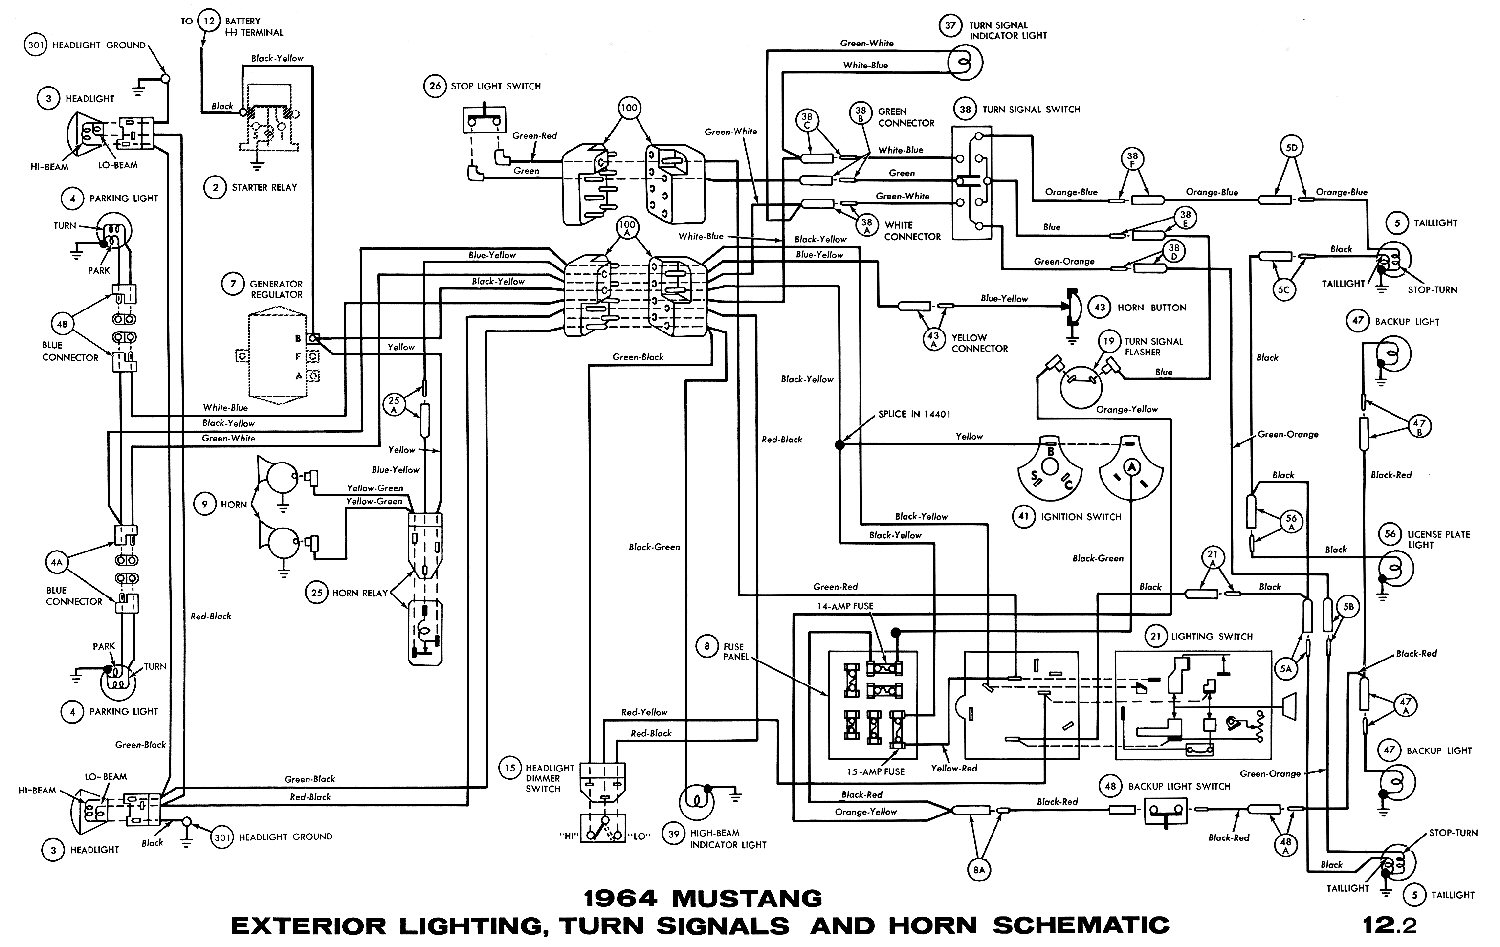 89 Mustang Ignition Wiring further 1969 Corvette 427 Wiring Diagram in addition 92 Paseo Engine Swap Wiring Diagram likewise 67 Camaro Windshield Wiper Motor Wiring Diagram together with Schematics h. on 71 chevelle wiring diagram ignition system